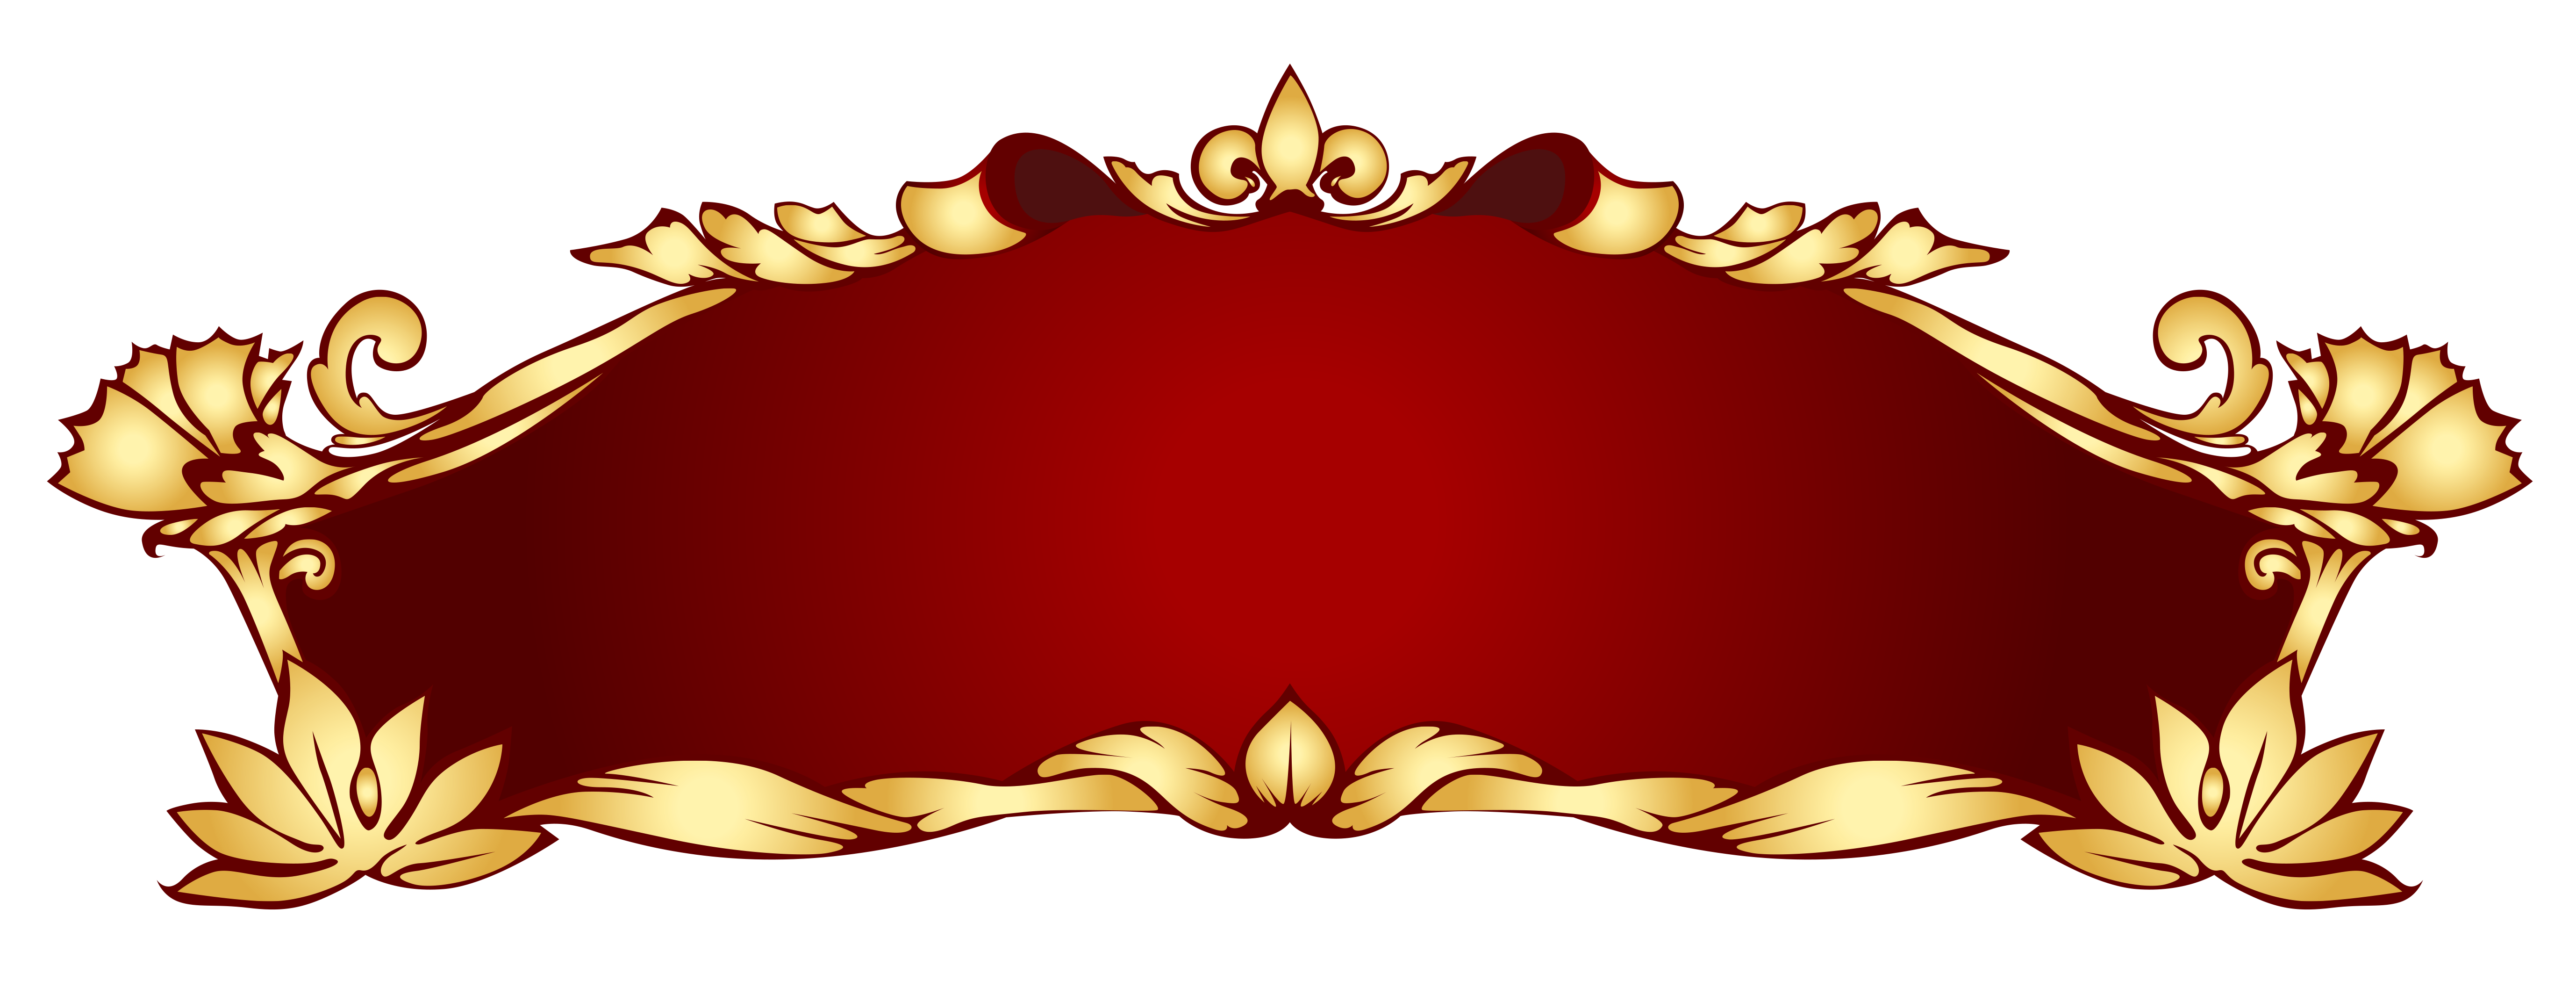 Transparent red deco png. College clipart banner